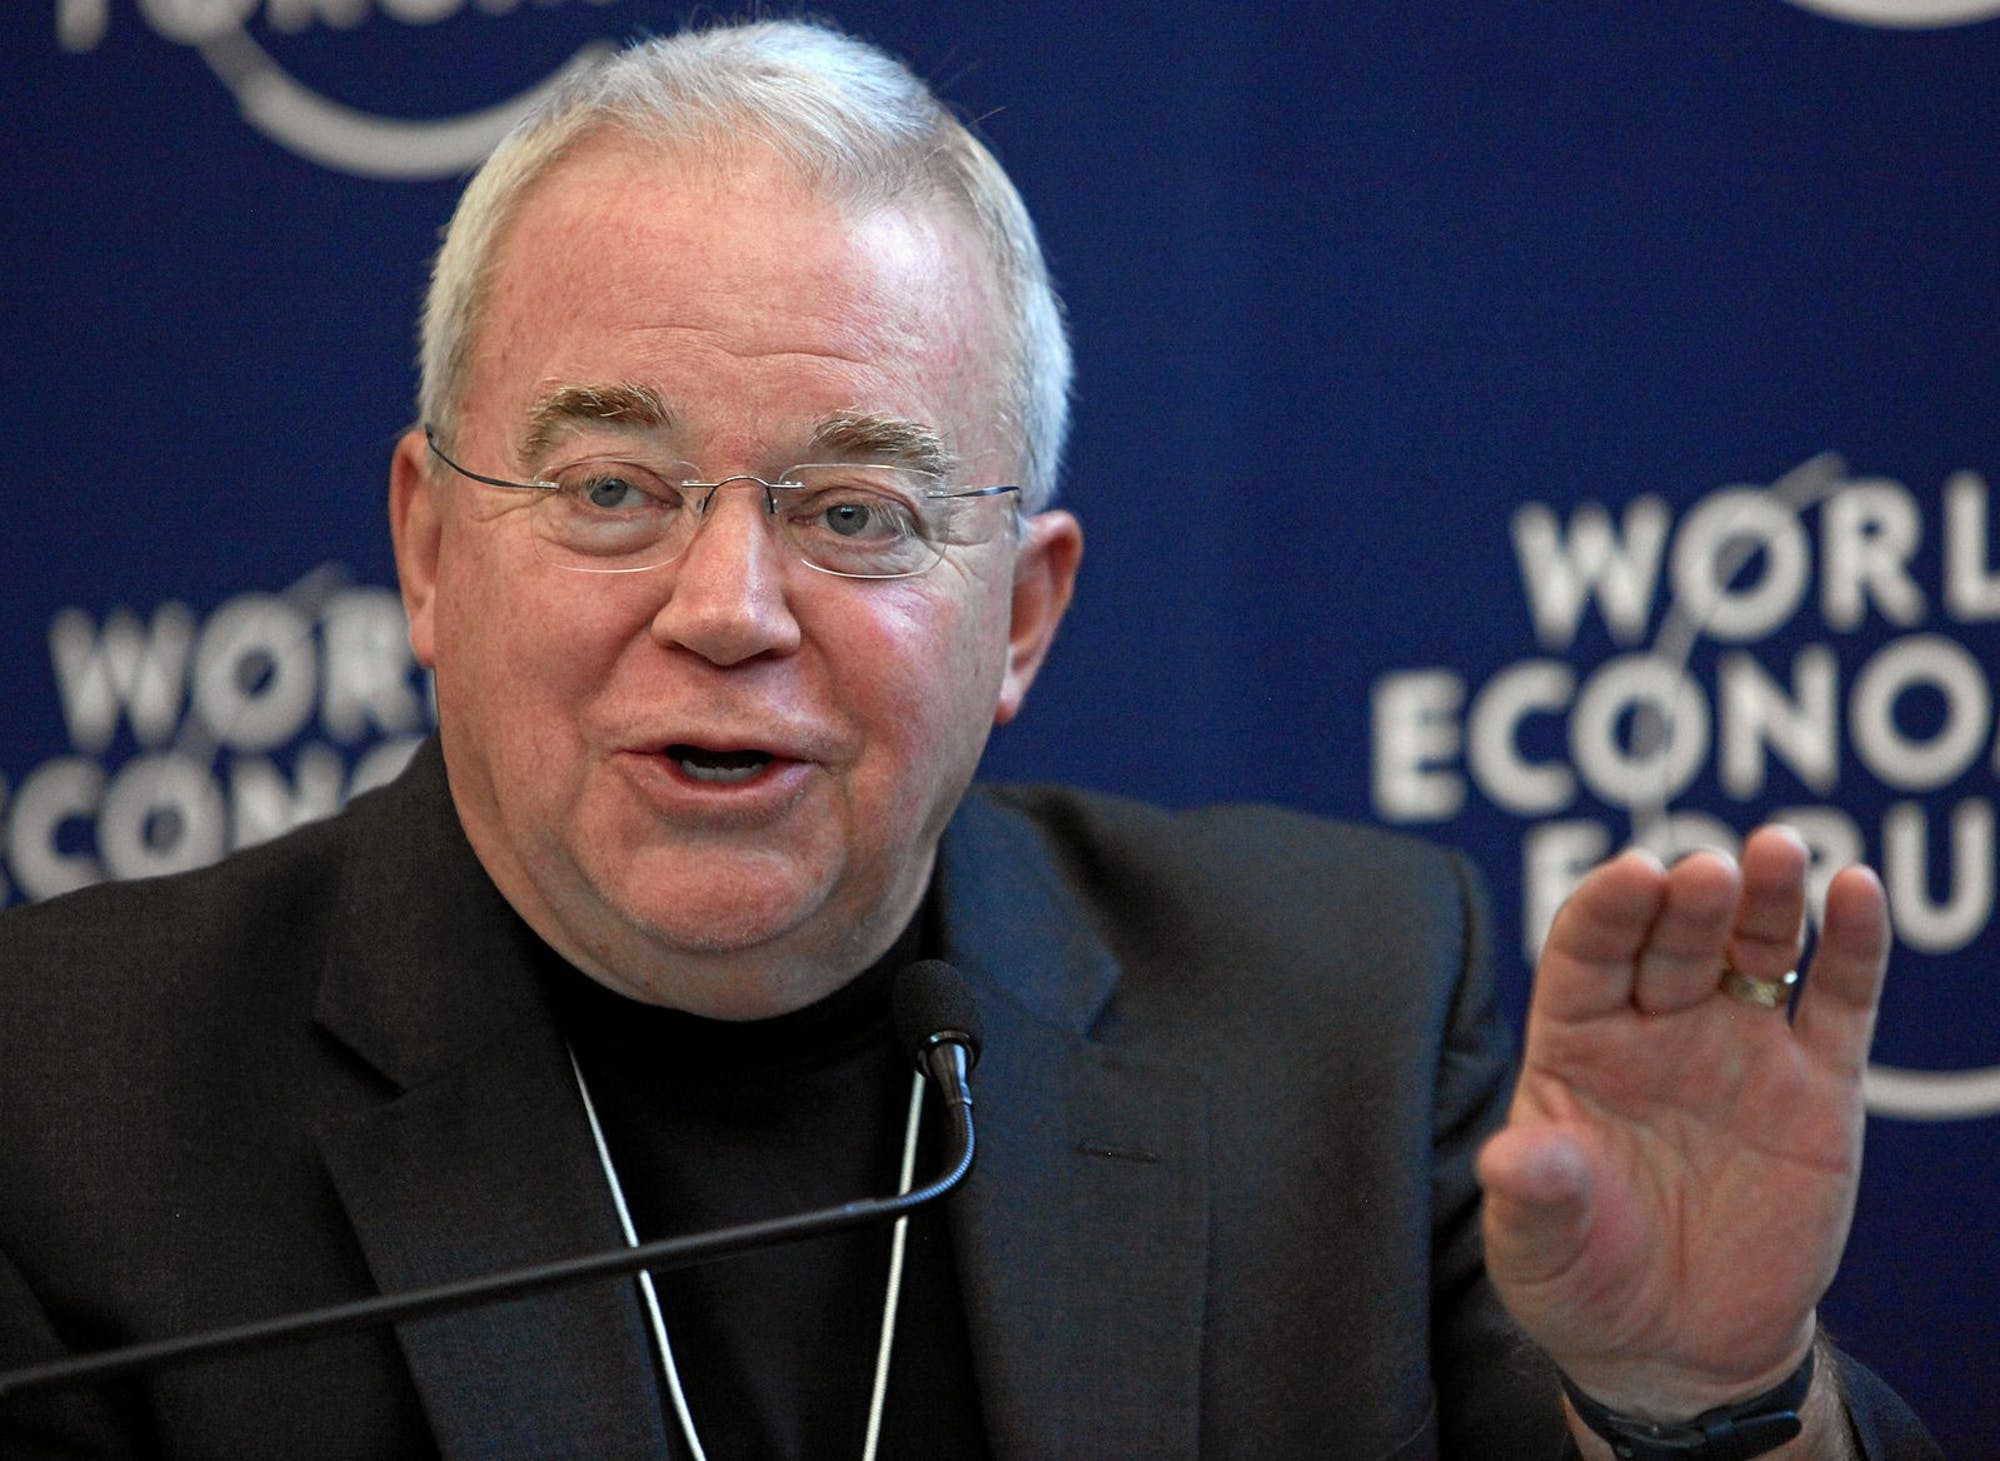 jim-wallis-world-economic-forum-annual-meeting-2012